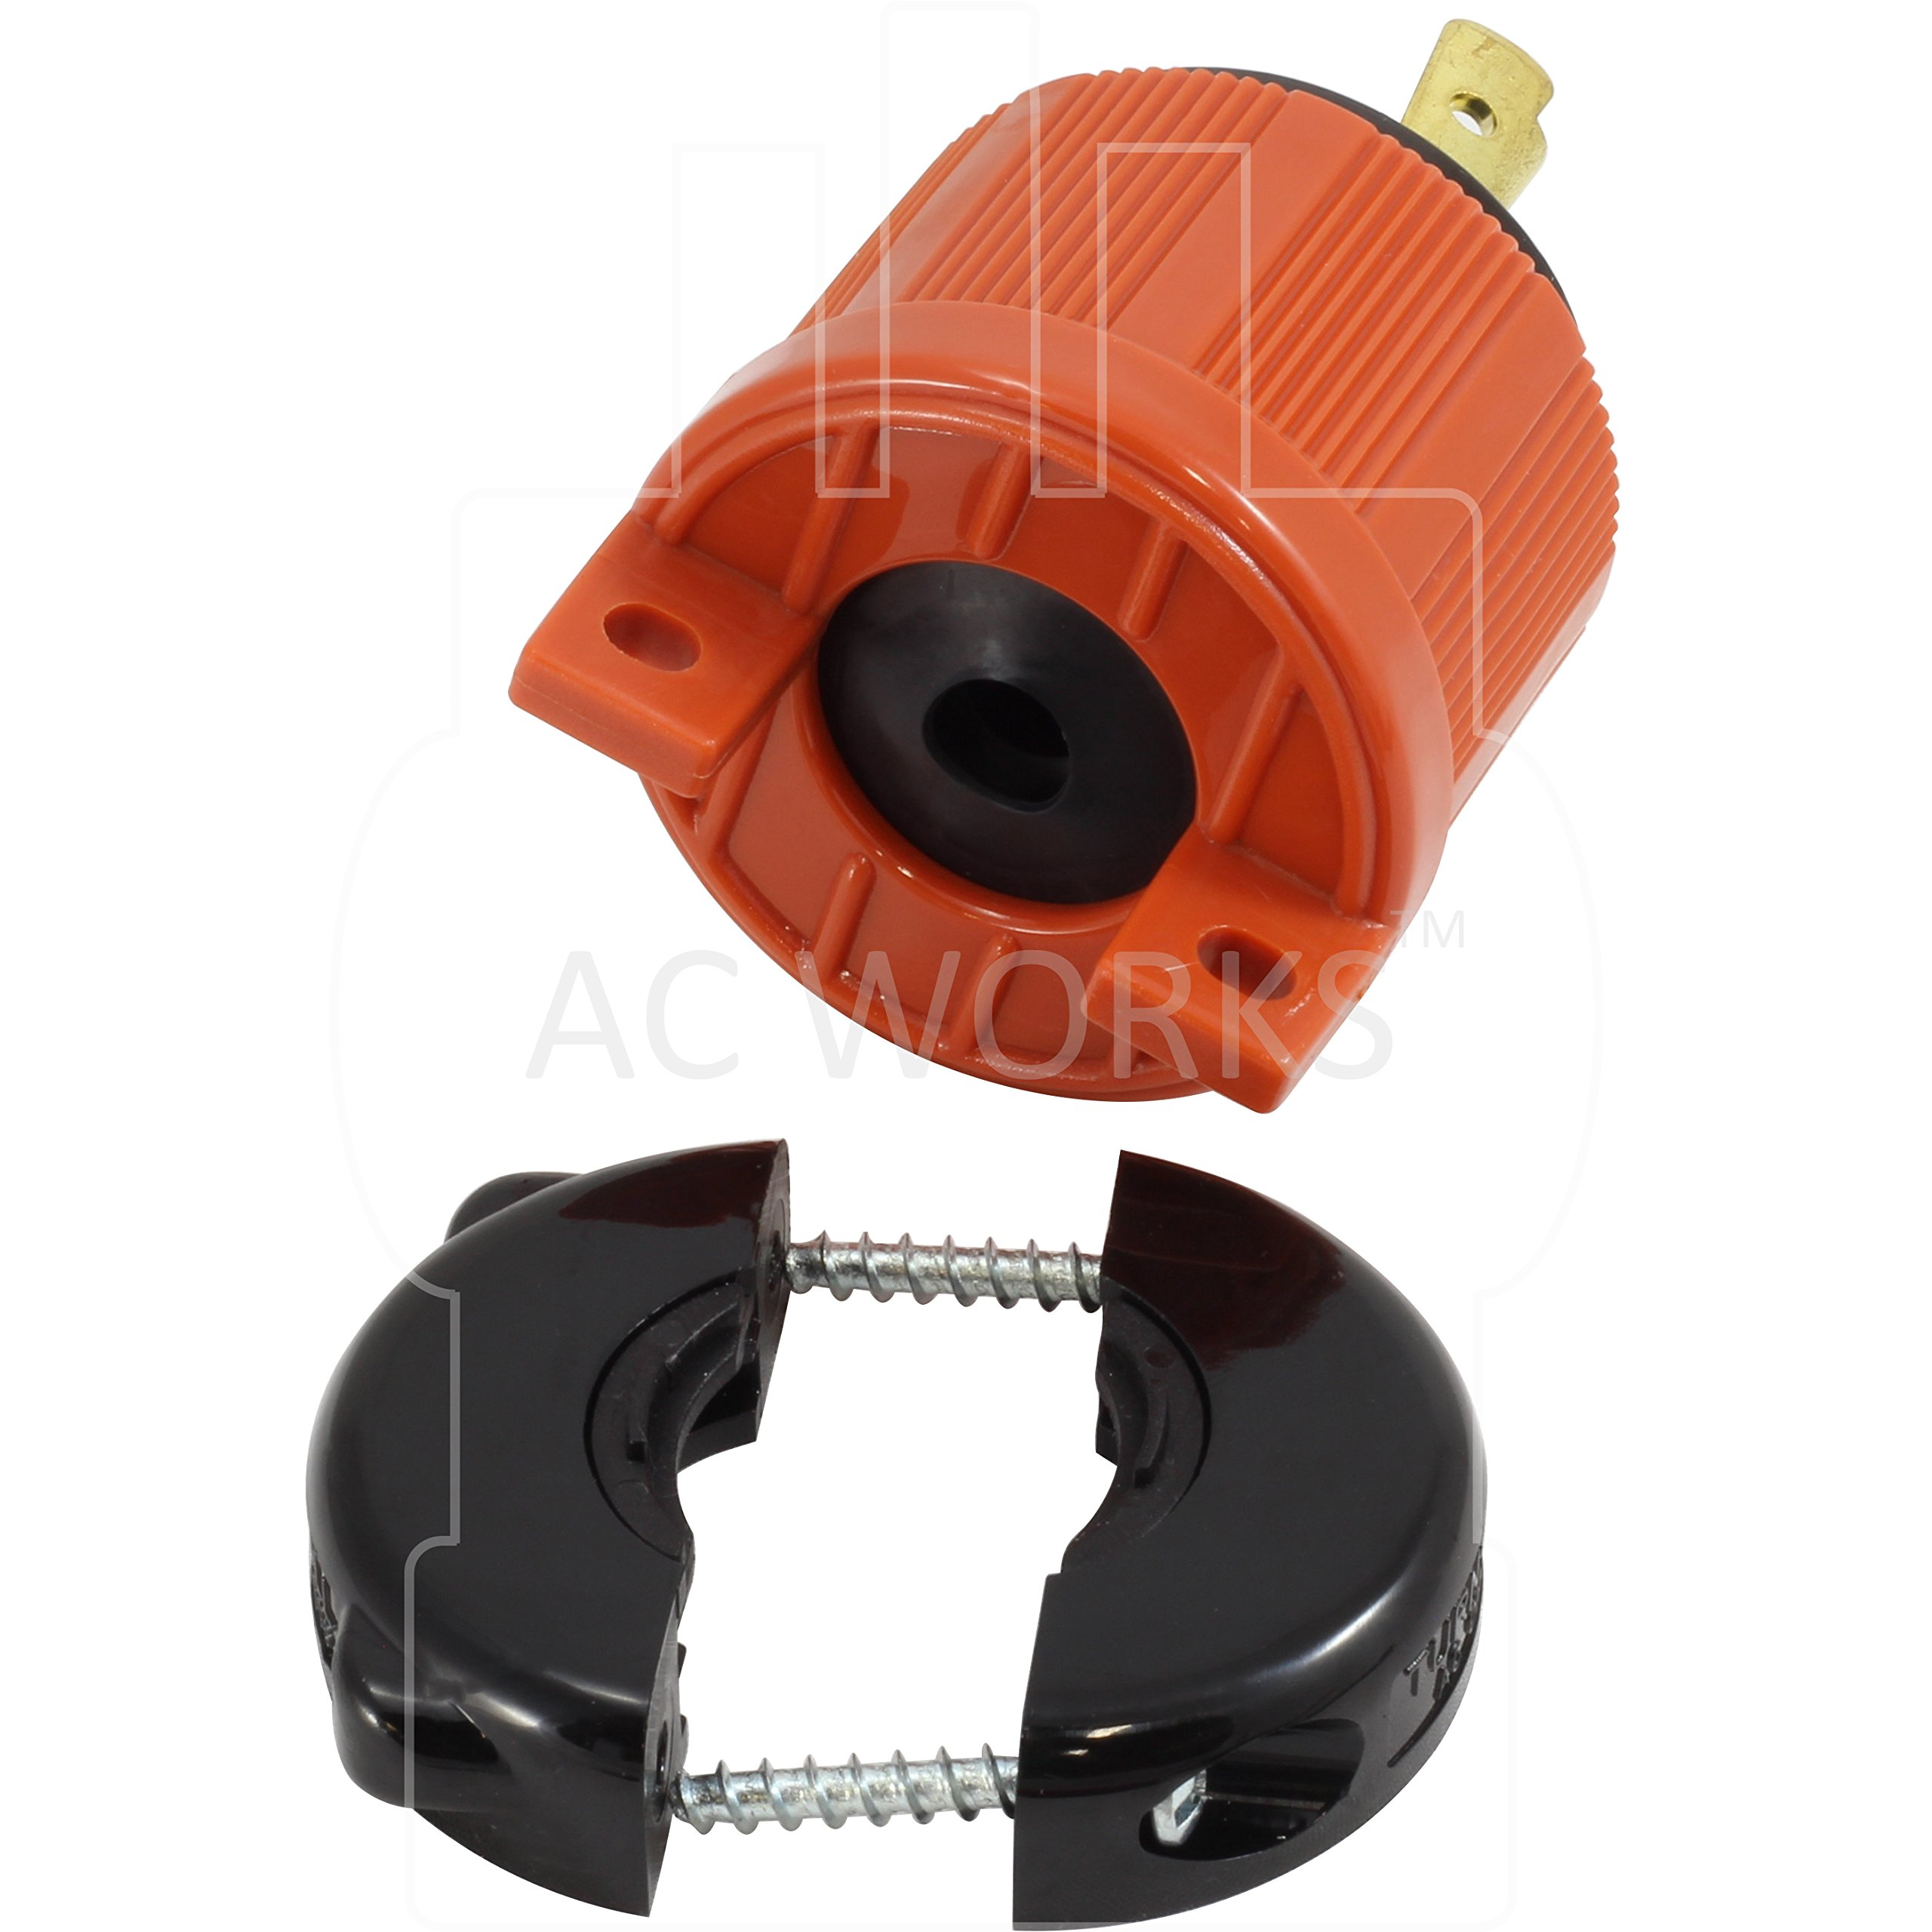 AC WORKS [ASL620P] NEMA L6-20P 20Amp 250Volt 3 Prong Locking Male Plug With UL, C-UL Approval by AC WORKS (Image #4)